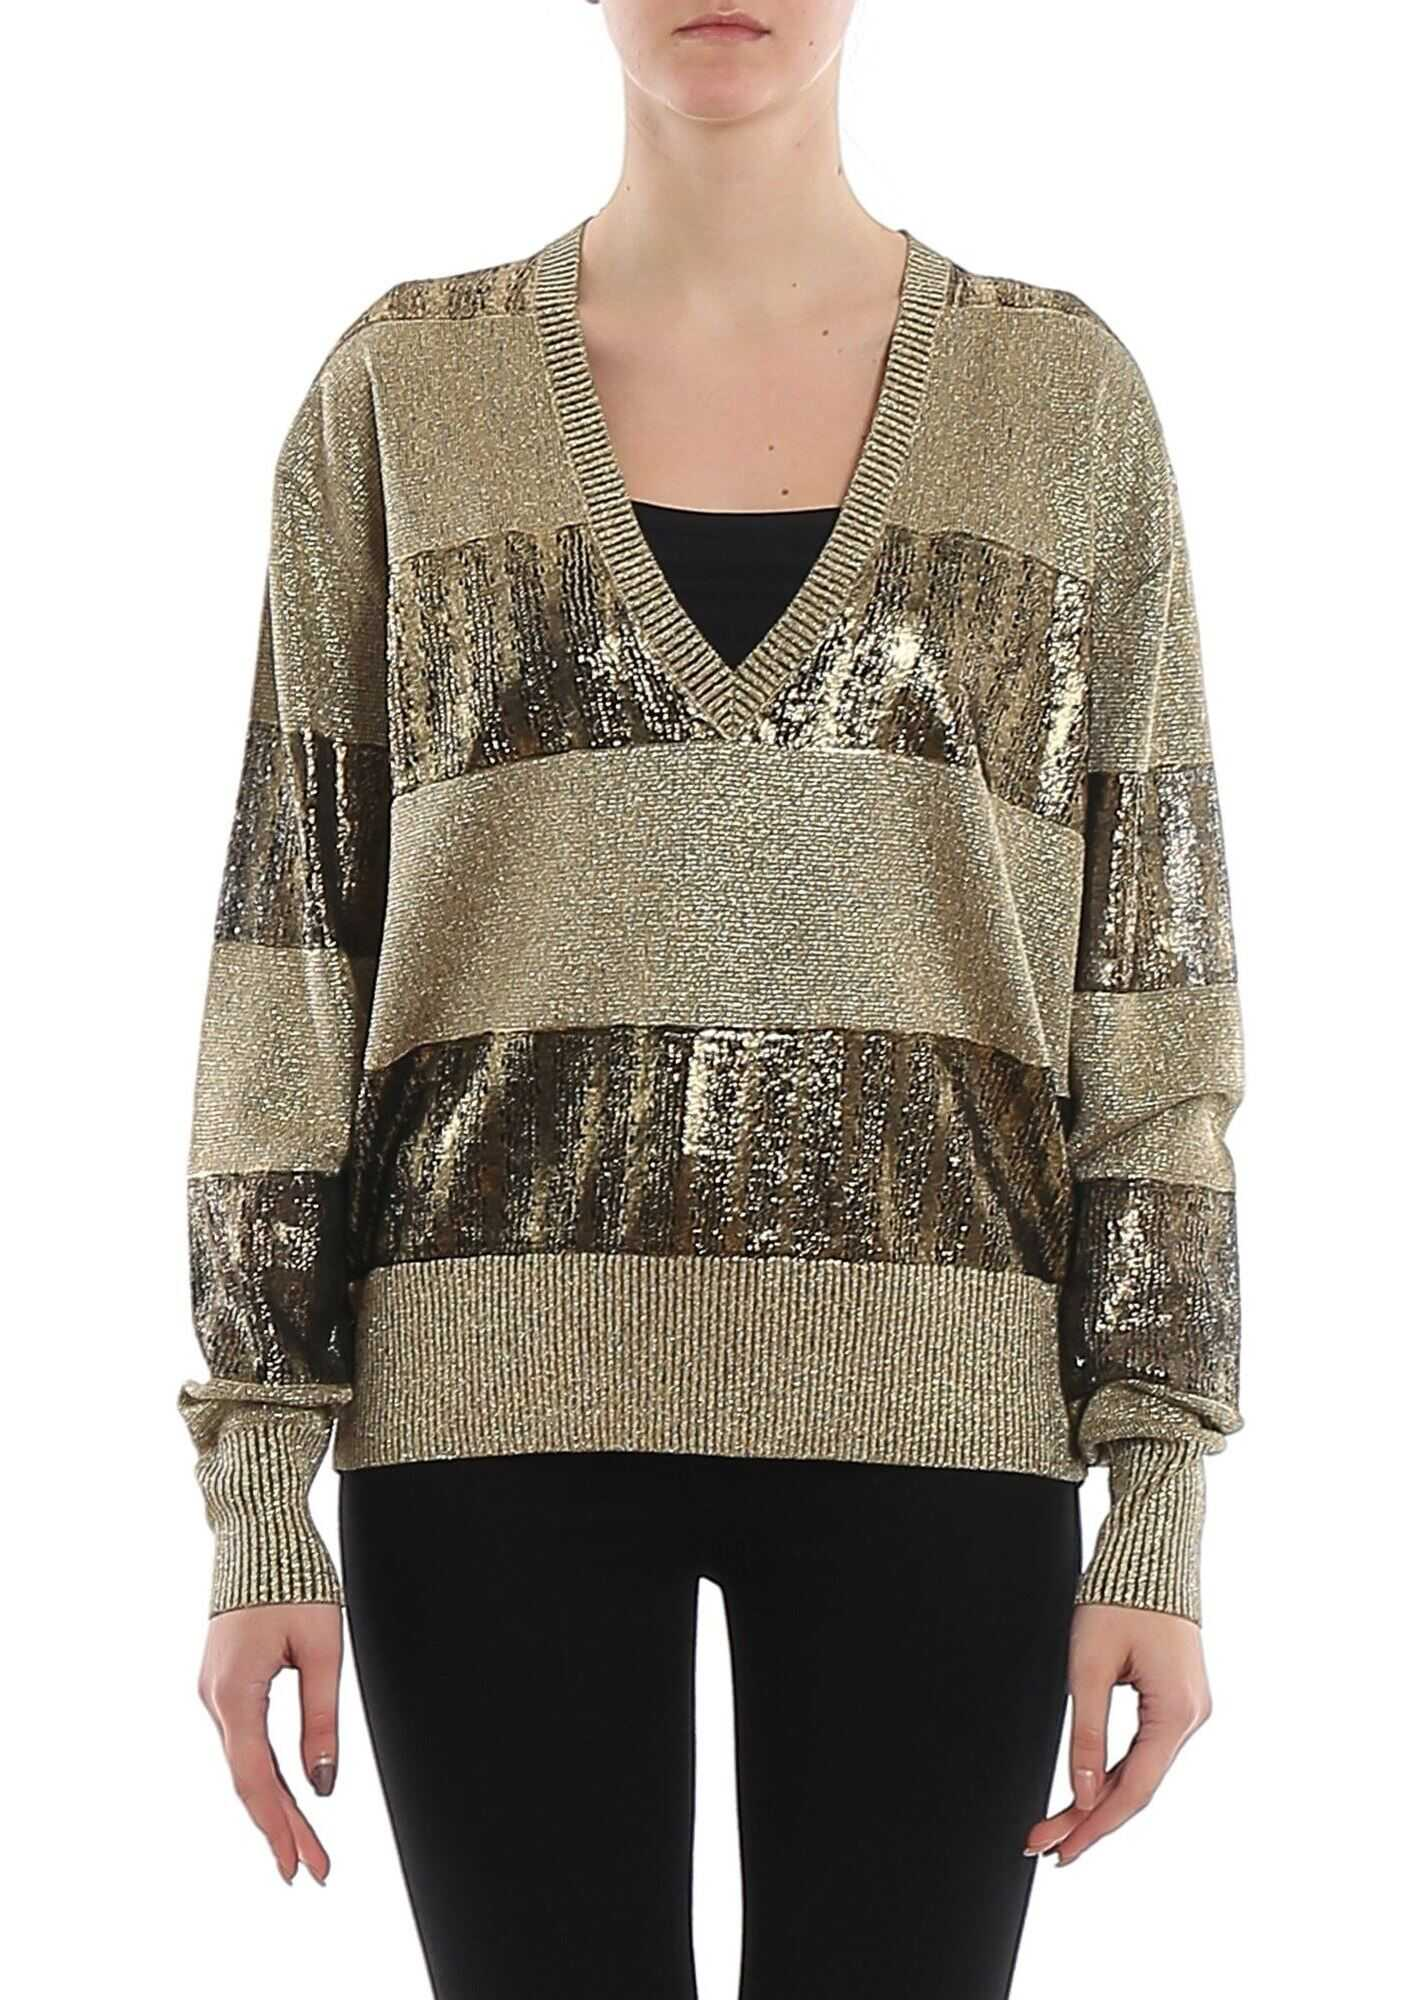 Saint Laurent Lamé Striped Patterned Sweater Gold